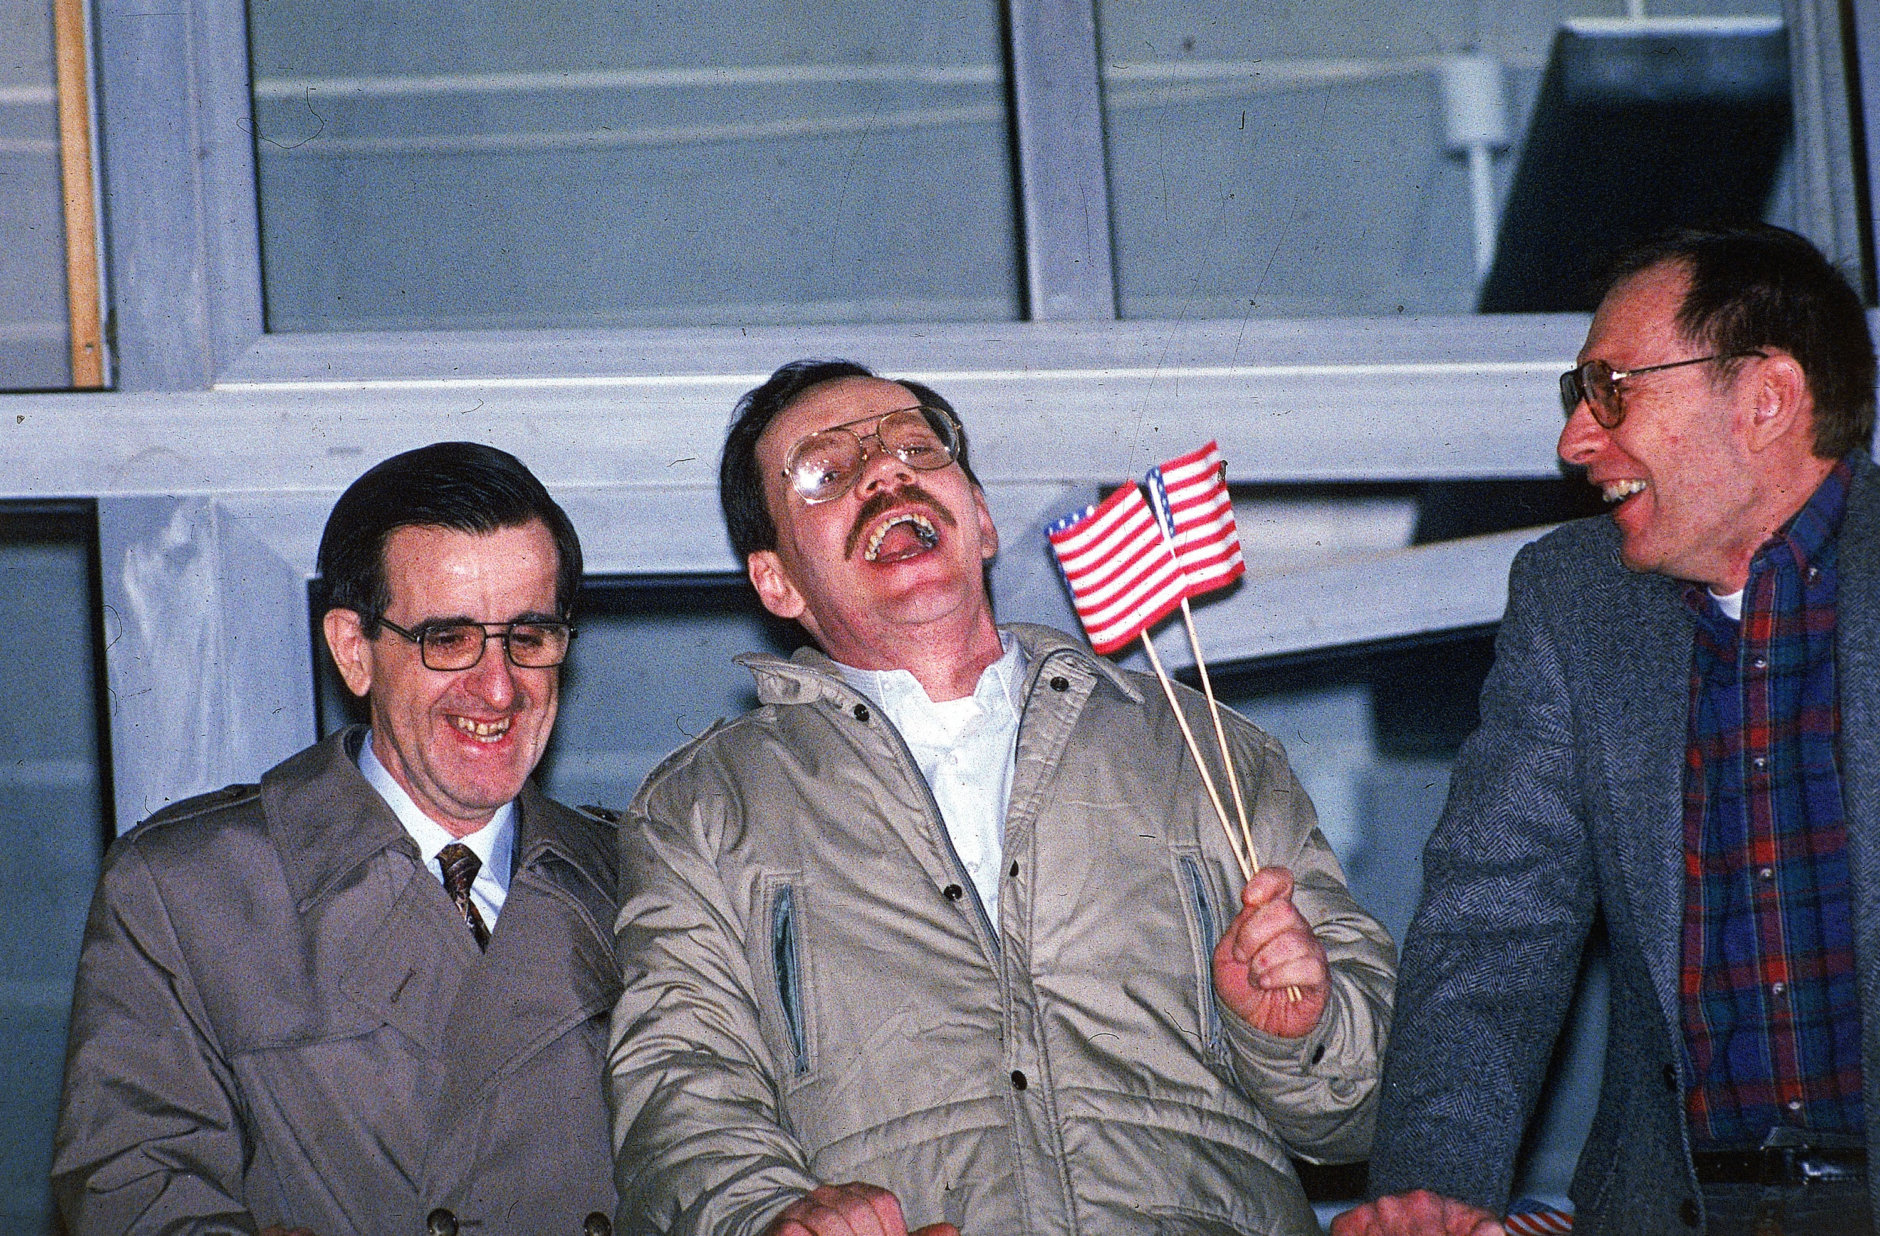 Three former U.S. hostages, from left, Joseph Cicippio, AP chief Middle East correspondent Terry Anderson, and Alann Steen enjoy a light moment shortly after Anderson's arrival at the Wiesbaden Air Force hospital early Thursday, Dec. 5, 1991.  (AP Photo/Kurt Strumpf)